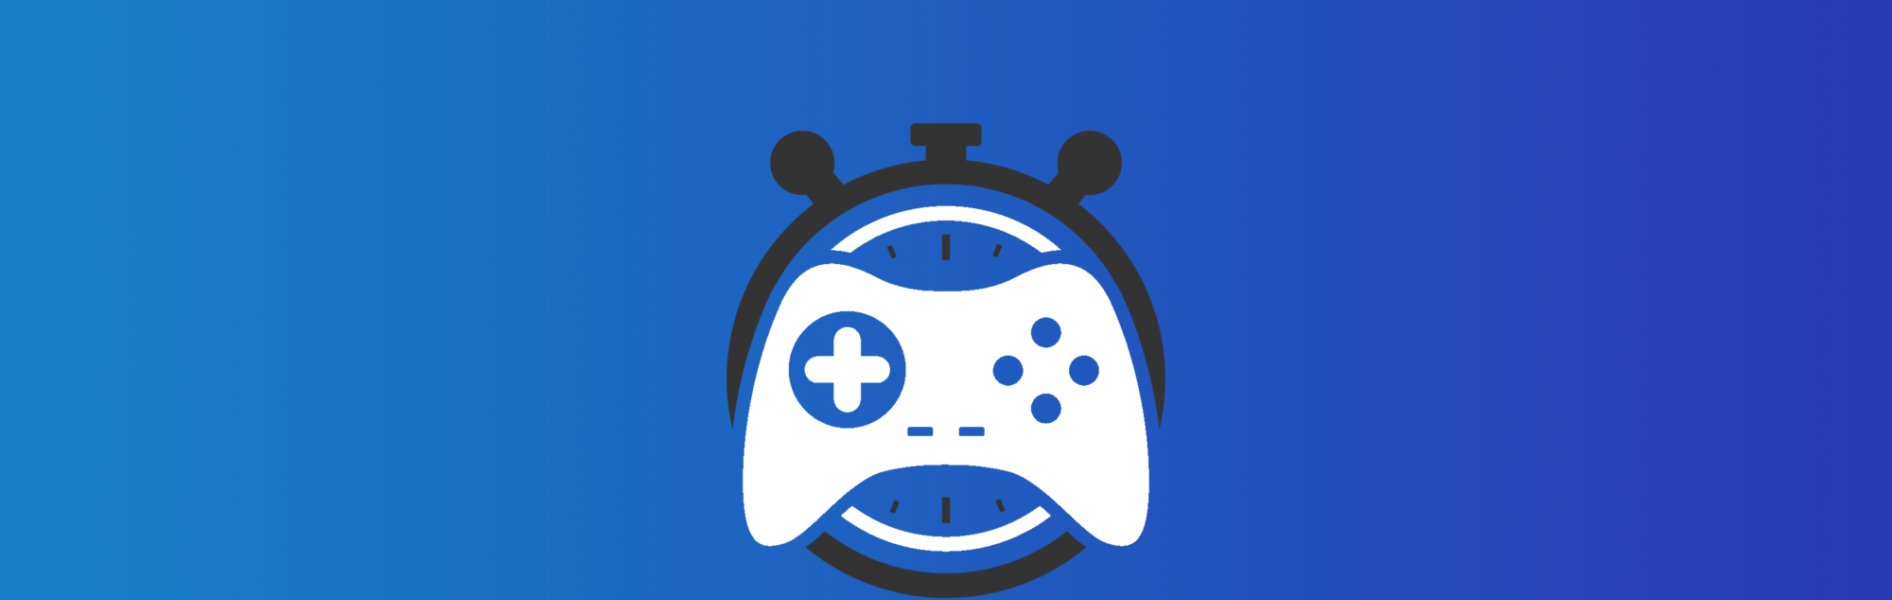 Play Time HQ Banner